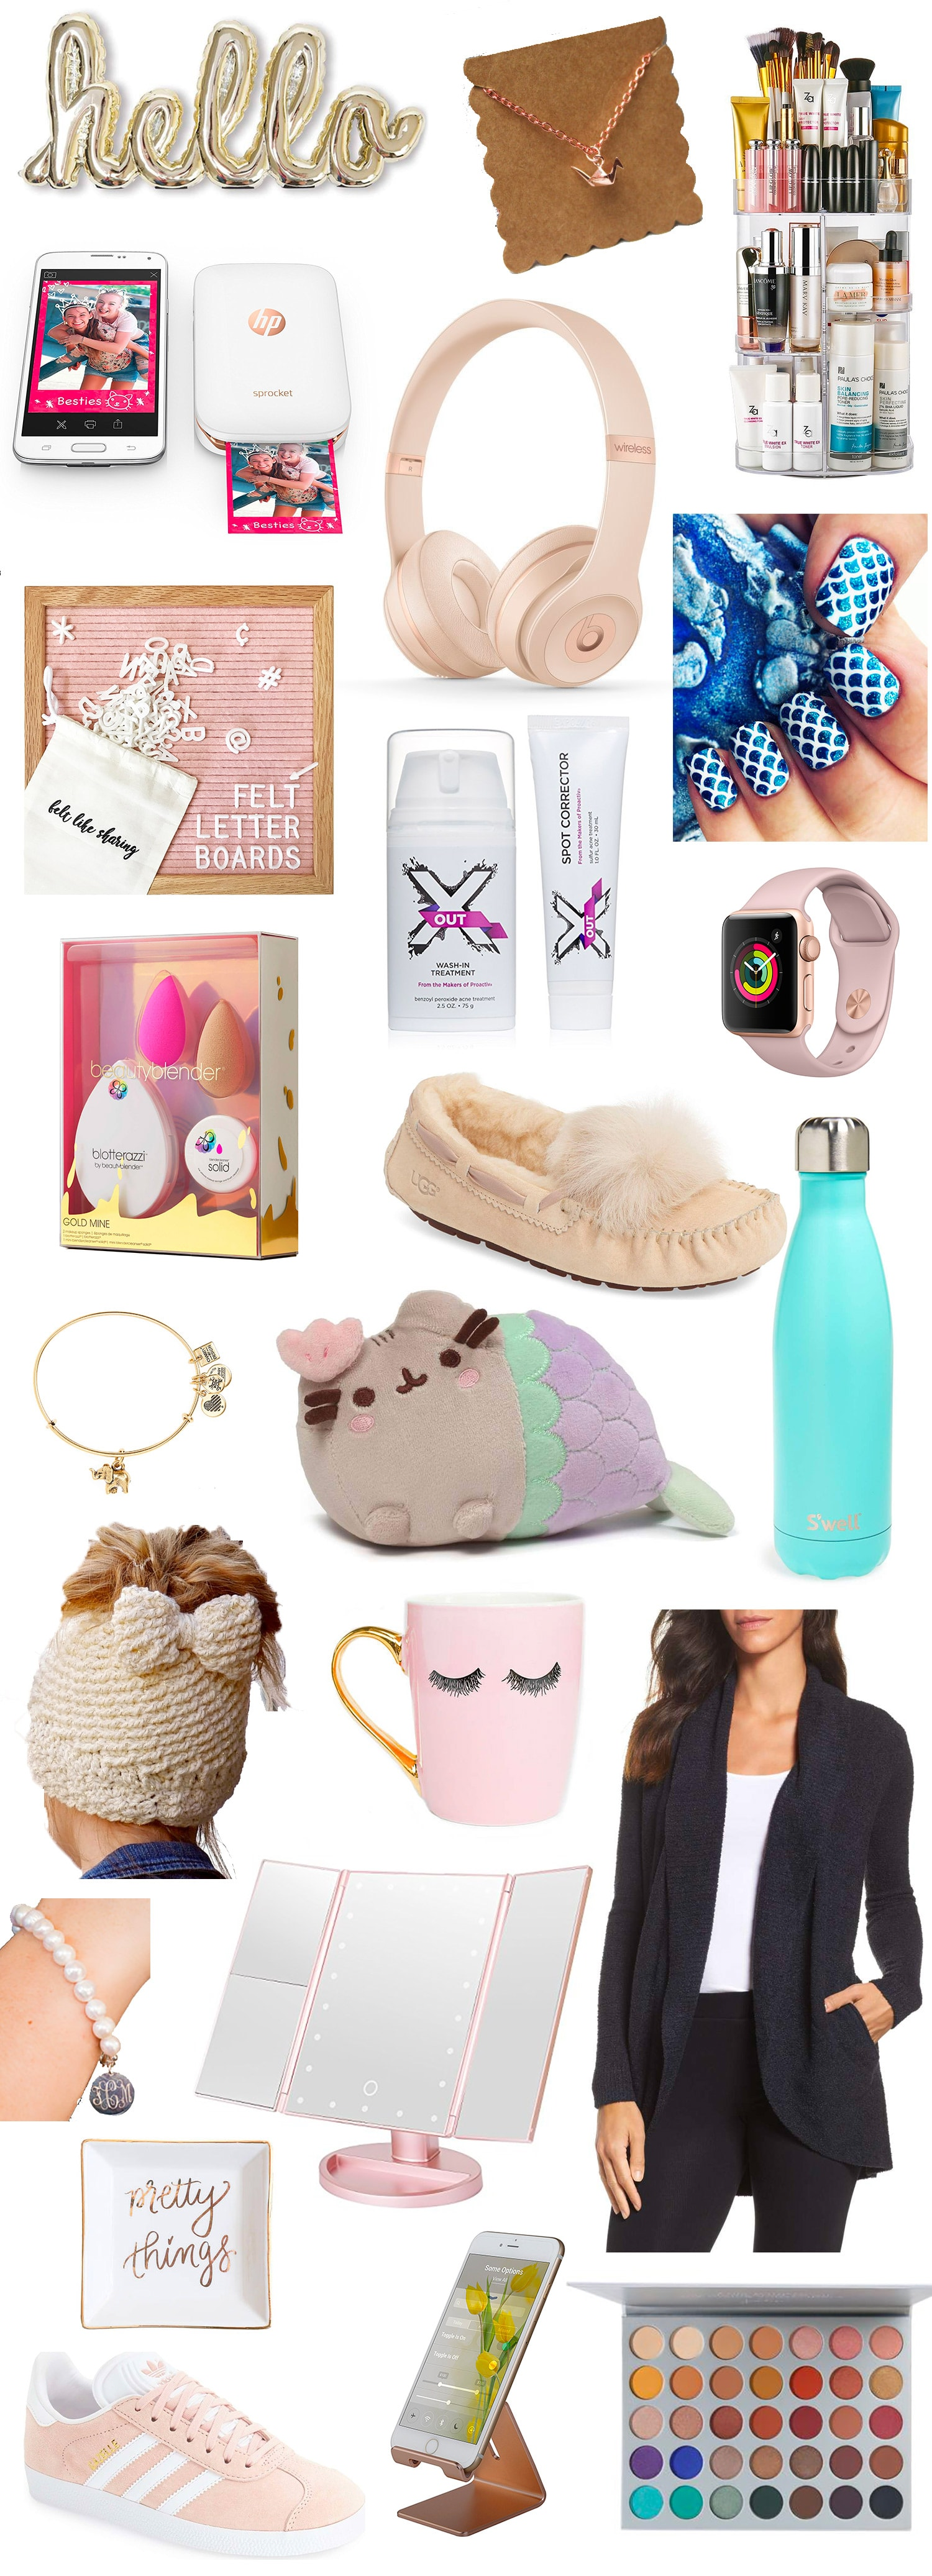 Top Gifts for Teens This Christmas | Ashley Brooke Nicholas